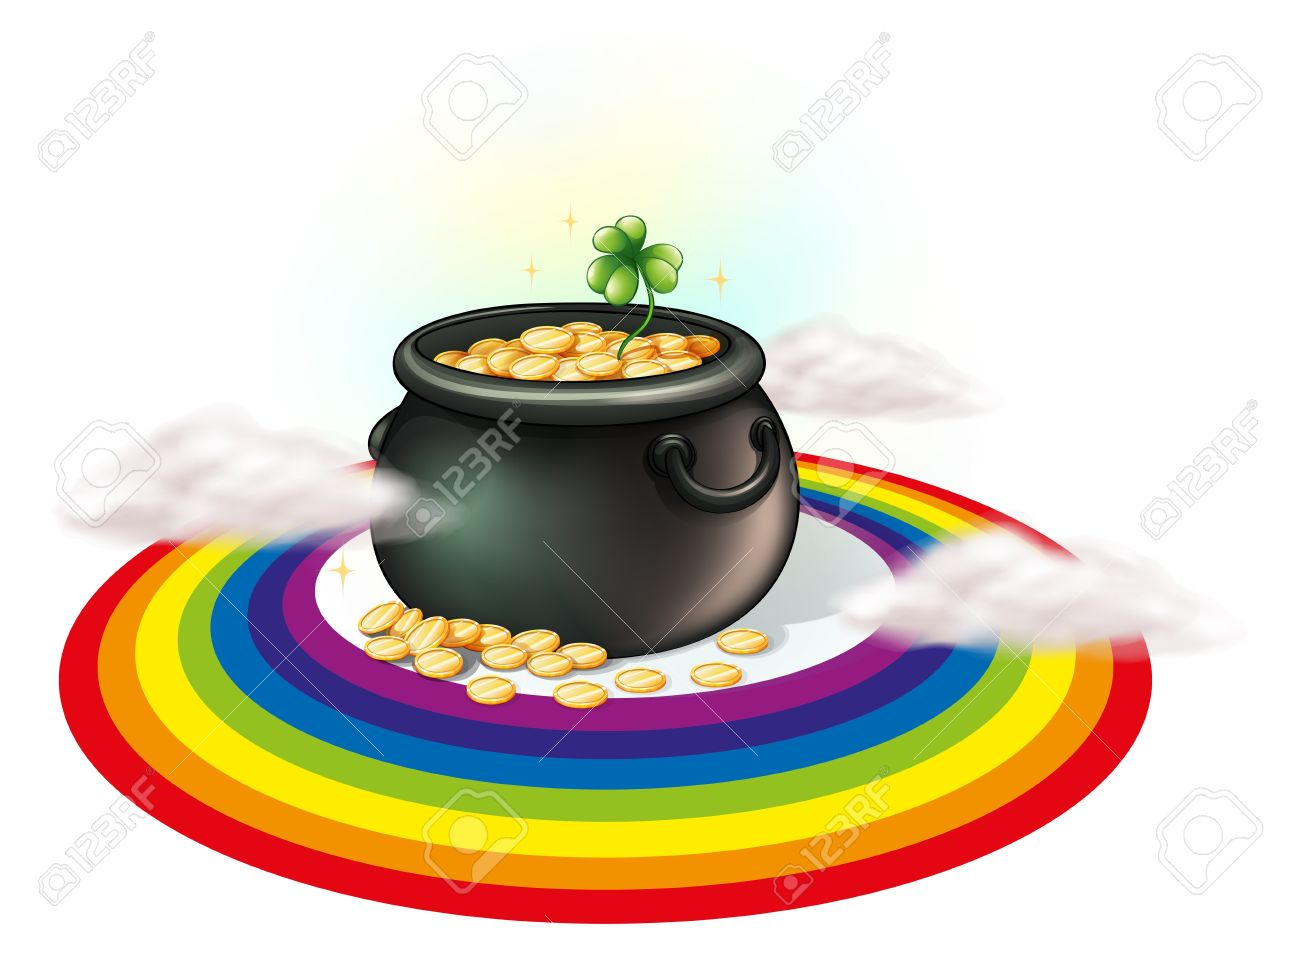 6,641 Pot Of Gold Stock Illustrations, Cliparts And Royalty Free ...